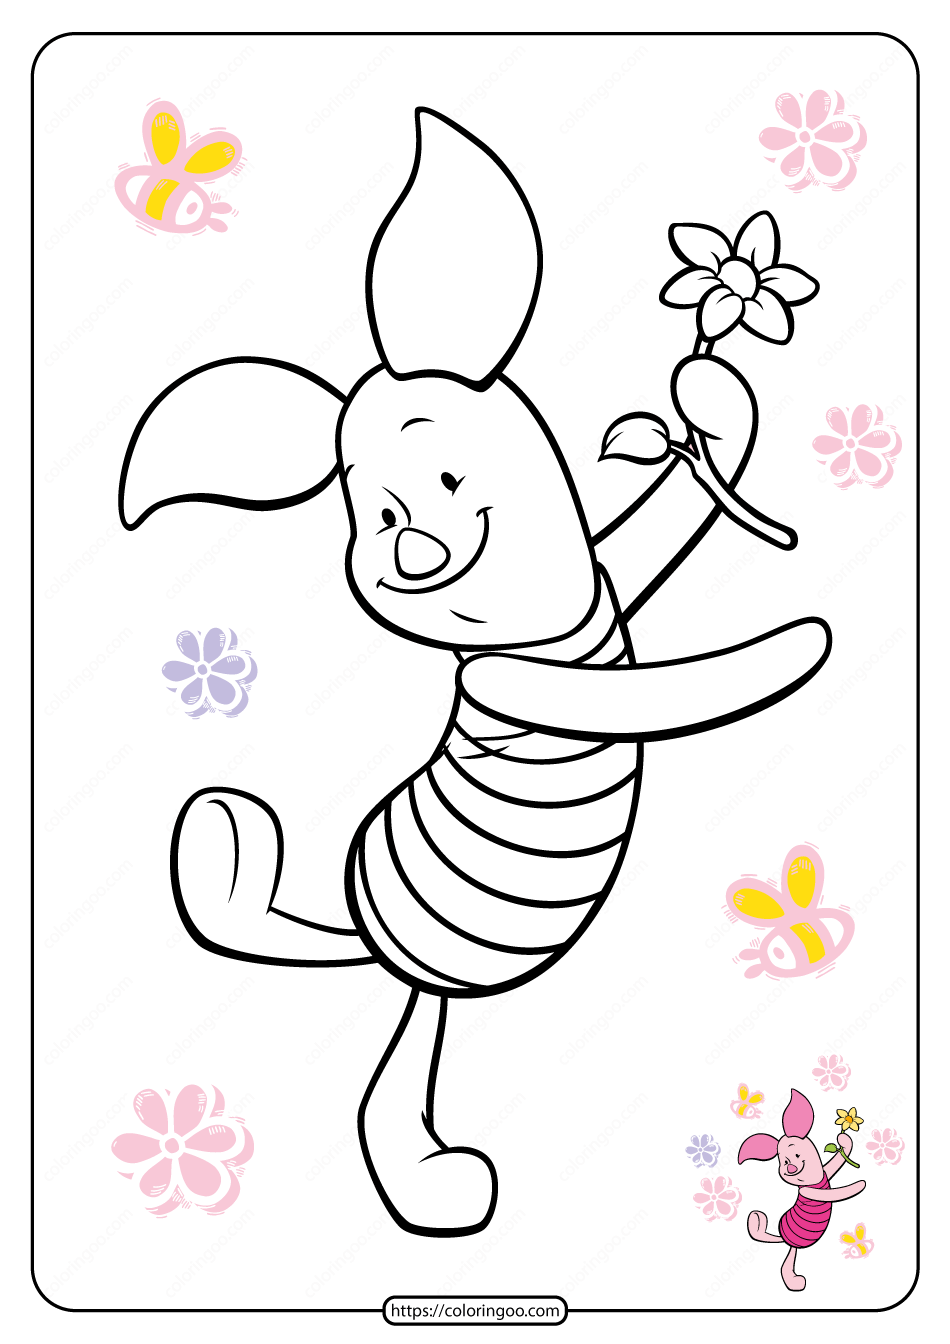 Printable Winnie the Pooh Pdf Coloring Pages 16